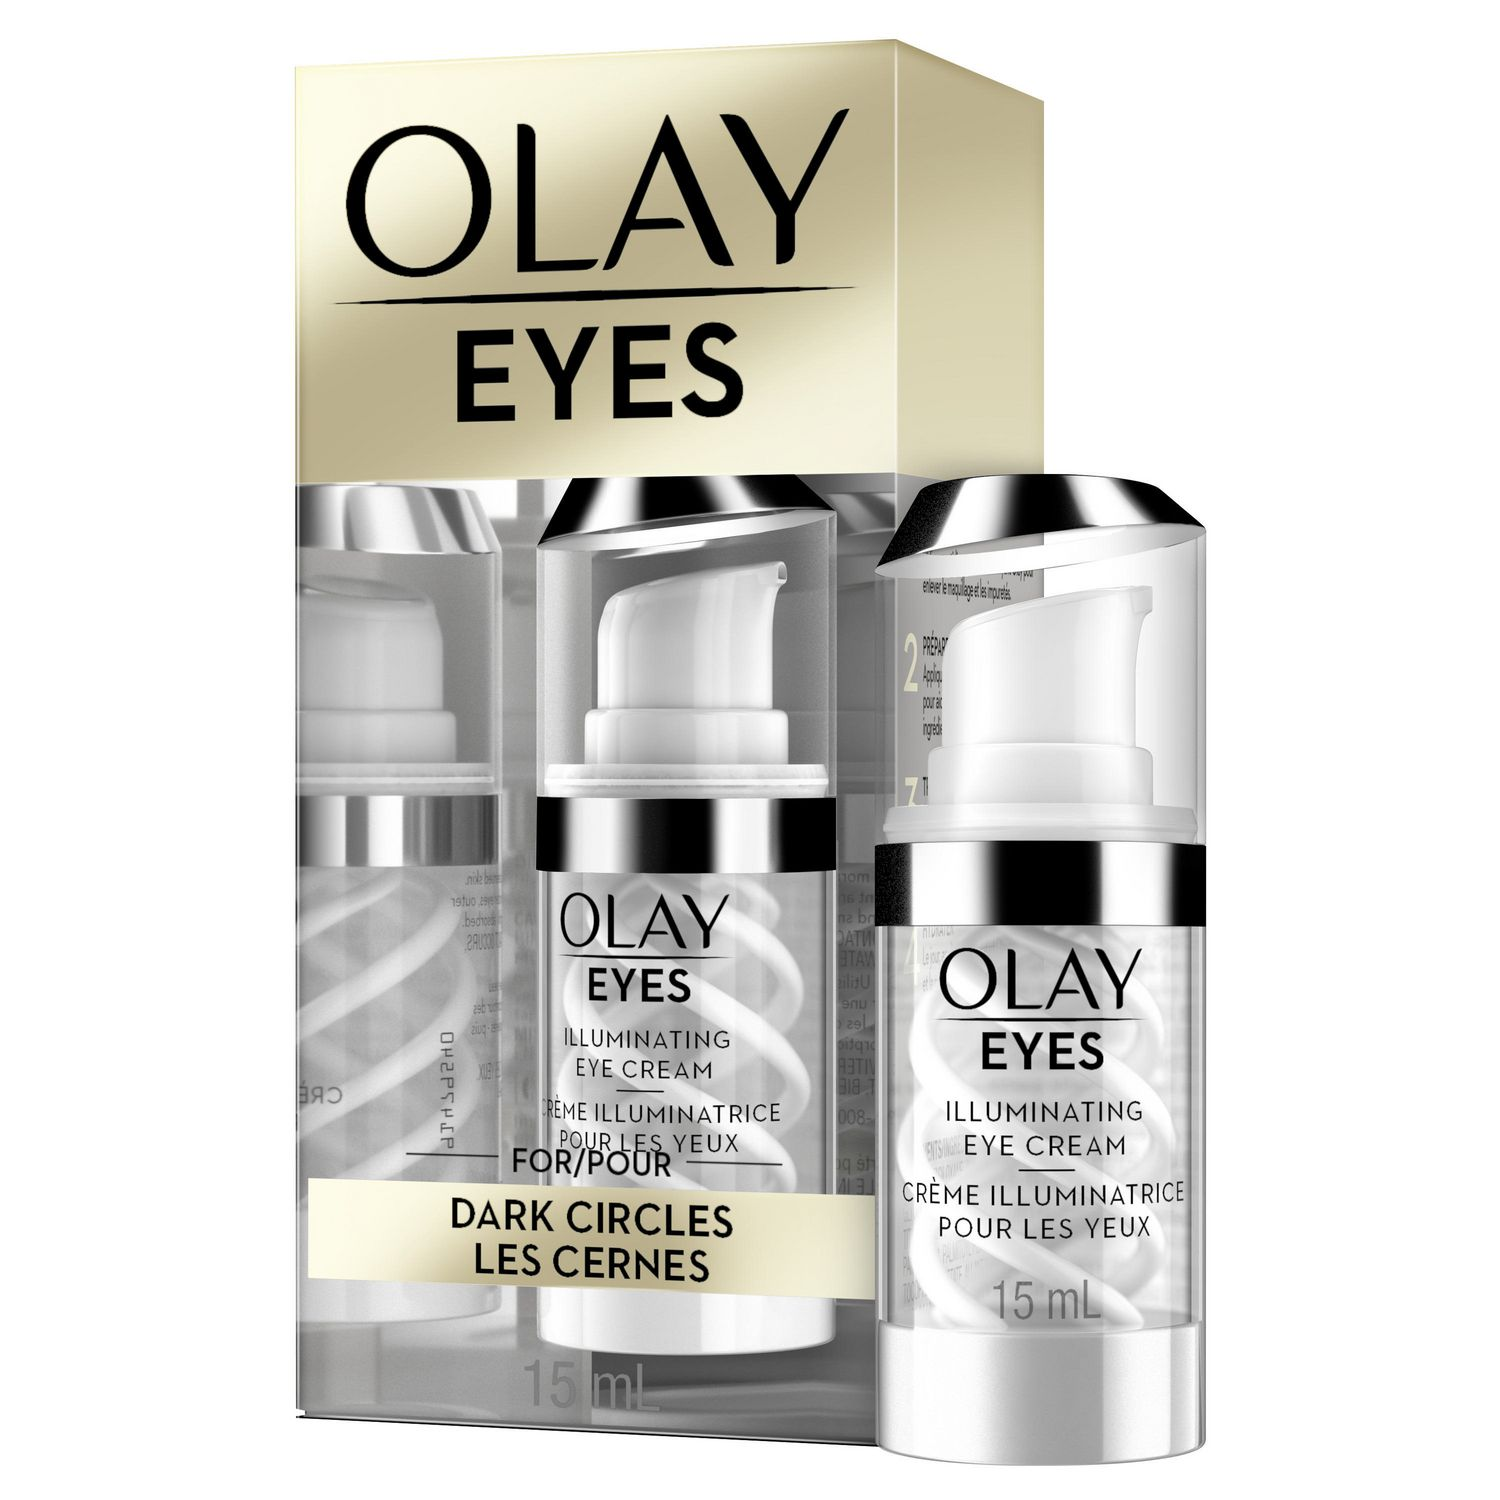 Olay Eyes Illuminating Eye Cream Walmart Canada